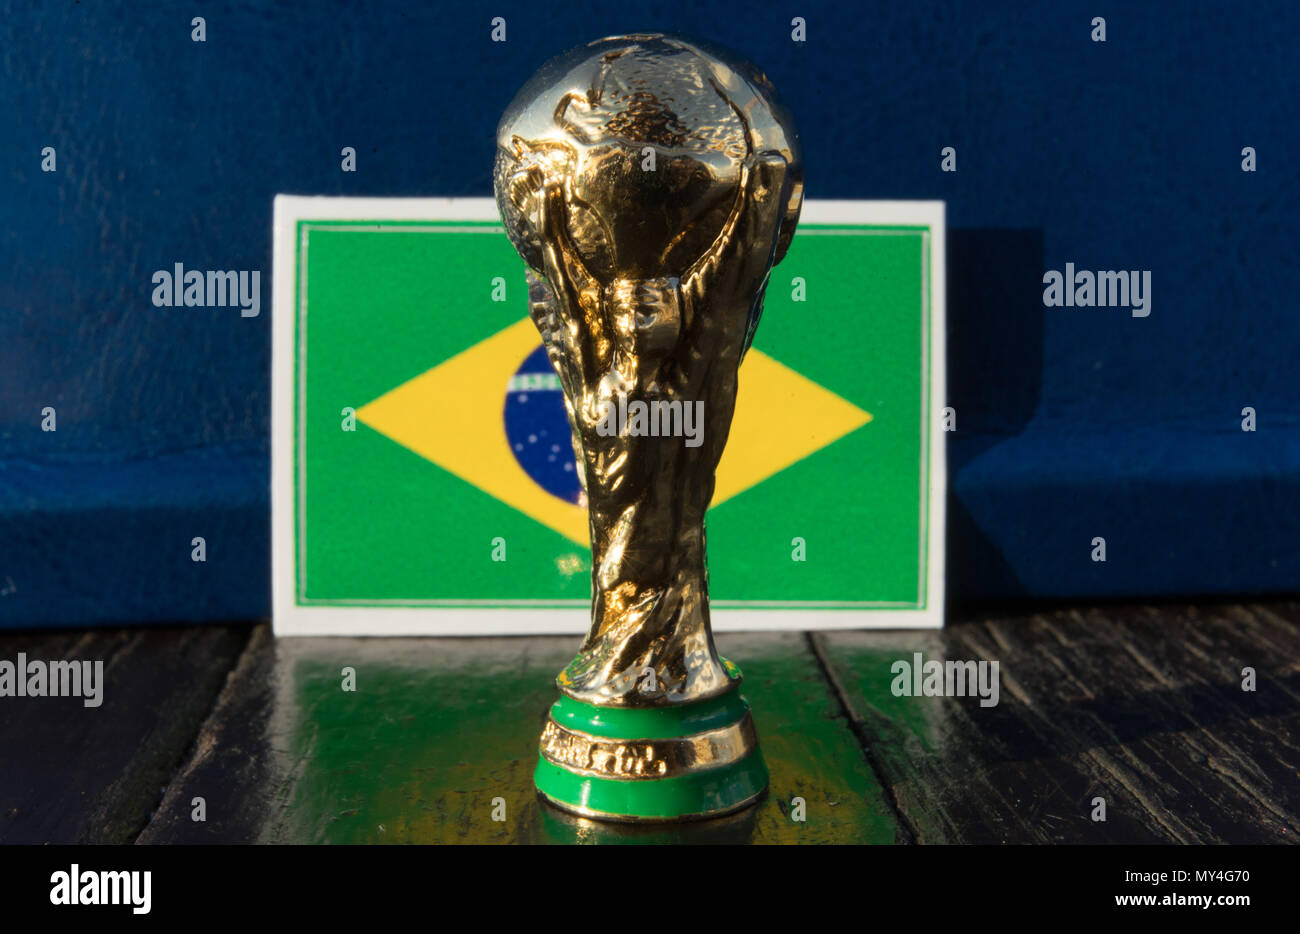 june-6-2018-moscow-russia-fifa-world-cup-trophy-on-the-background-of-the-flag-of-brazil